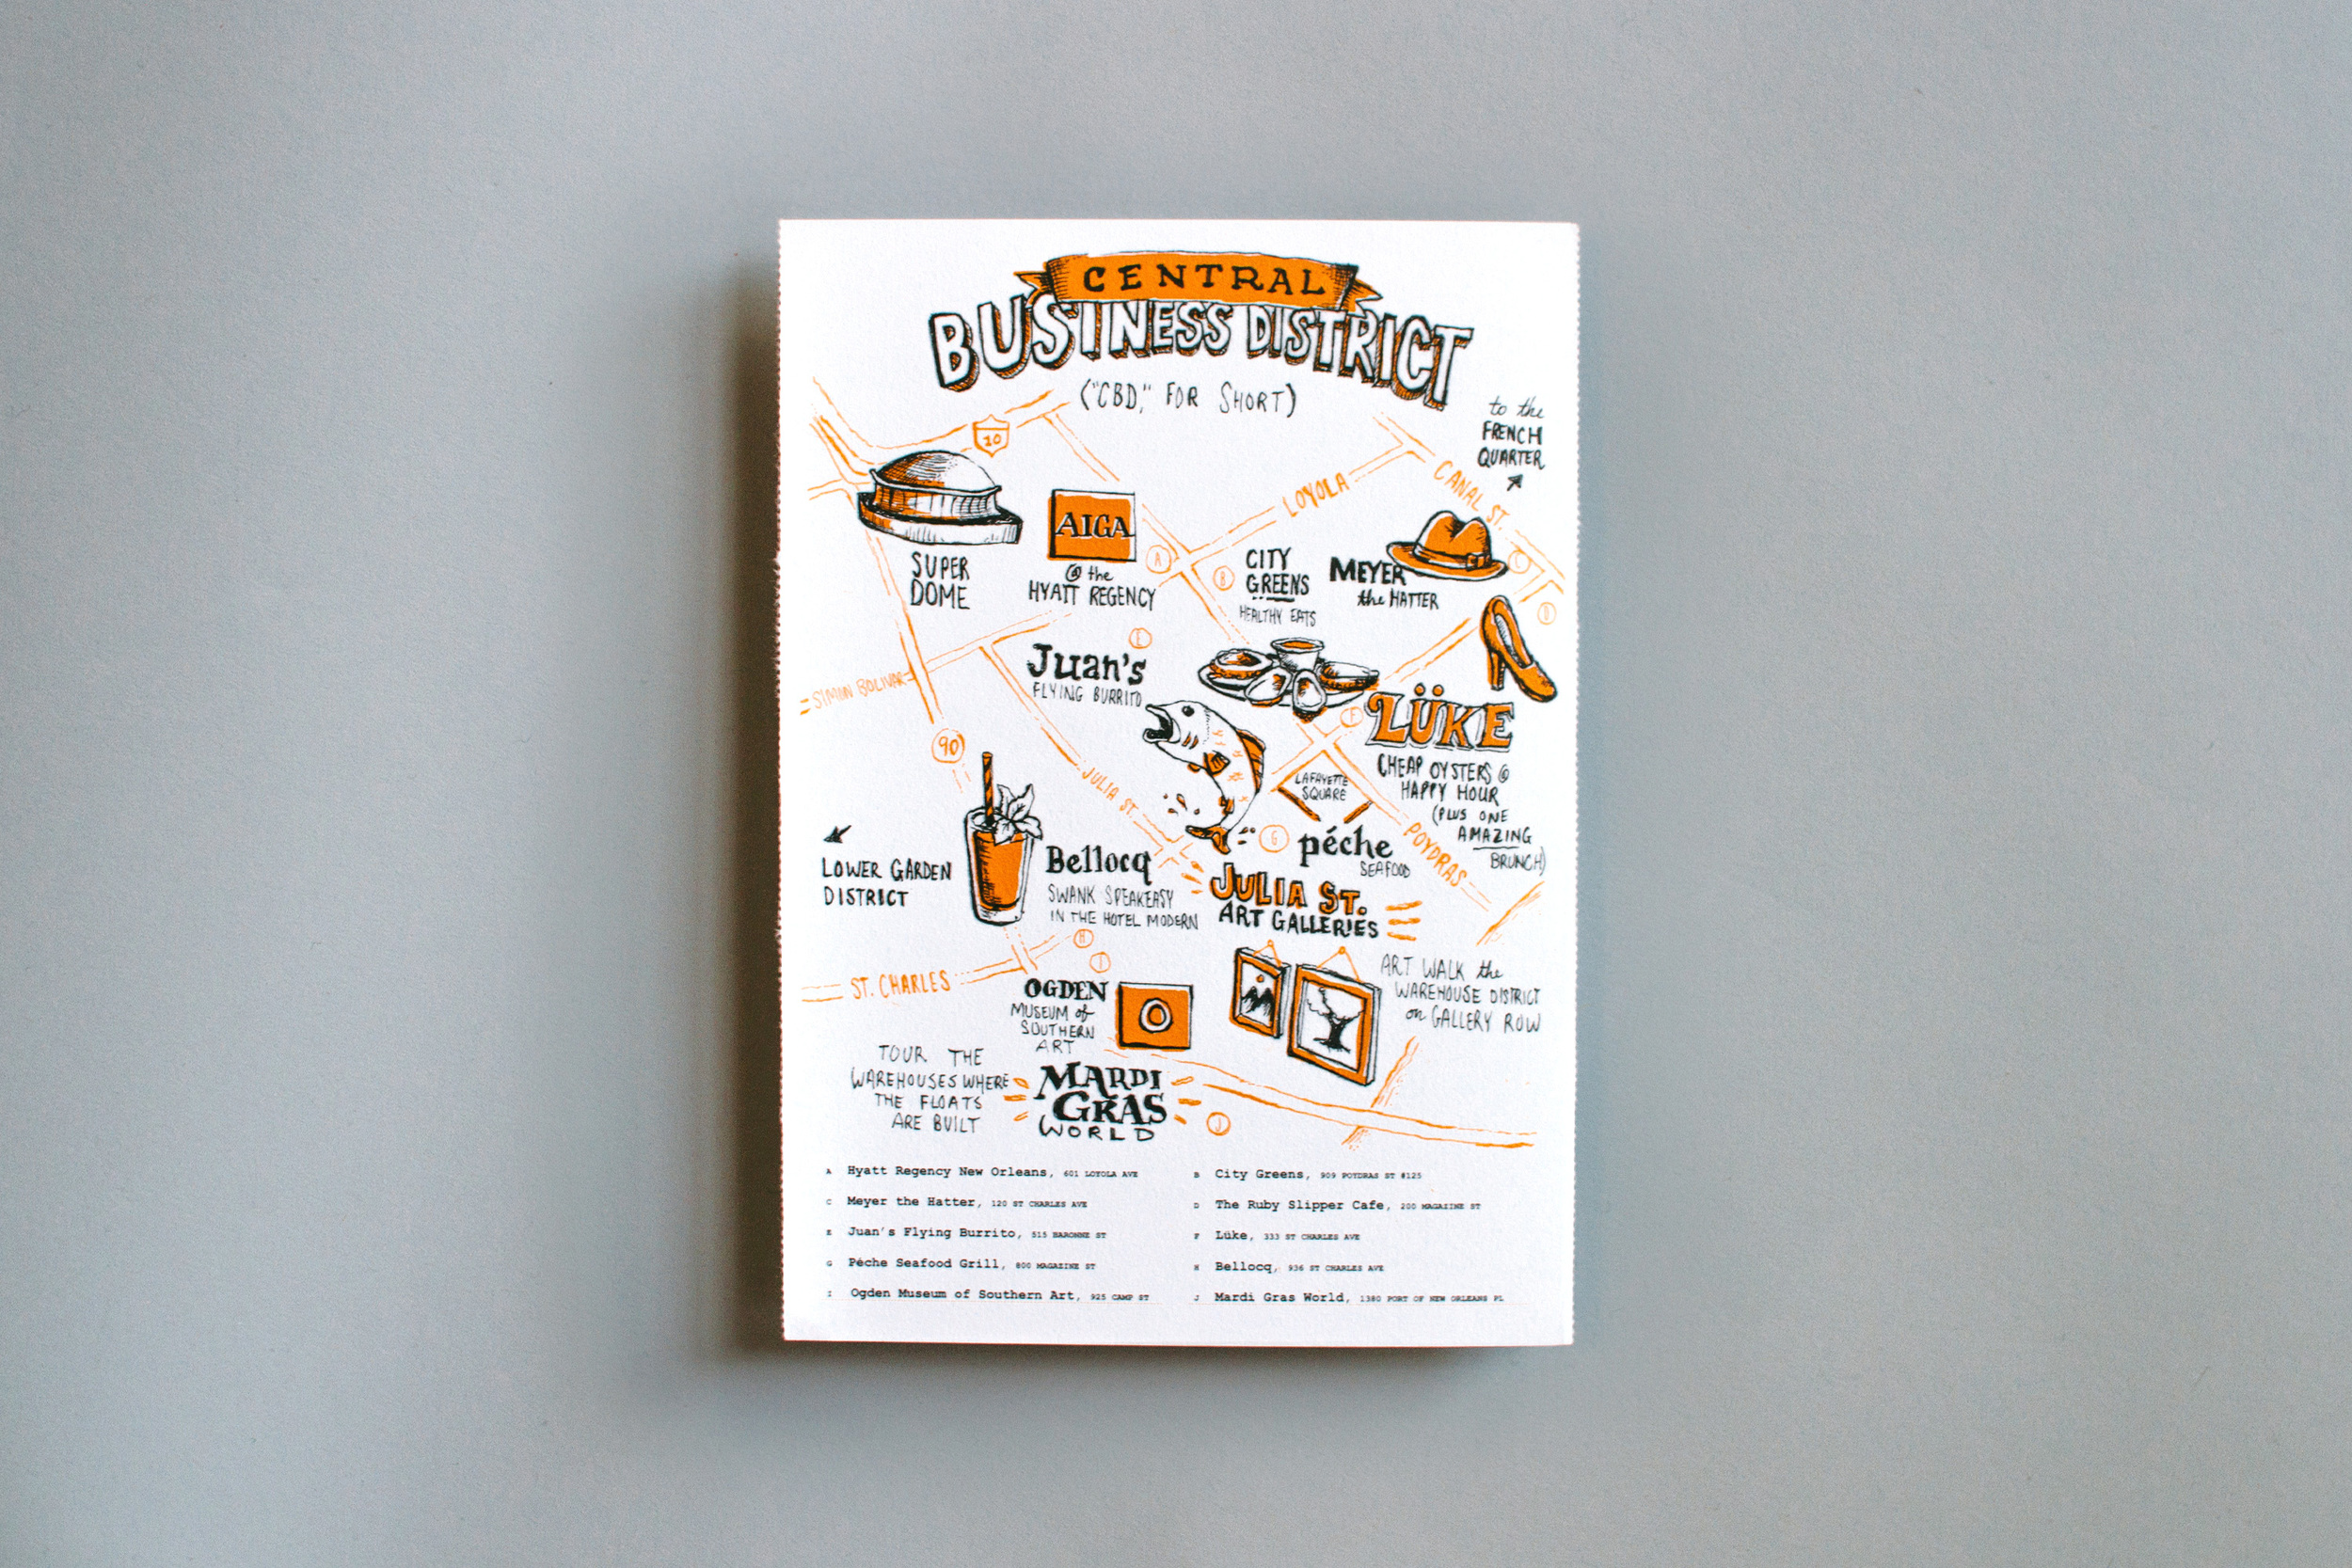 The Central Business District illustrated city guide, drawn and lettered for Neenah Paper's New Orleans promotional marketing materials at AIGA Conference. Features the Super Dome, Meyer the Hatter, Luke, Juan's, the Ruby Slipper, Bellocq, Julia Street Art Galleries, Peche, Mardi Gras World, and Ogden.